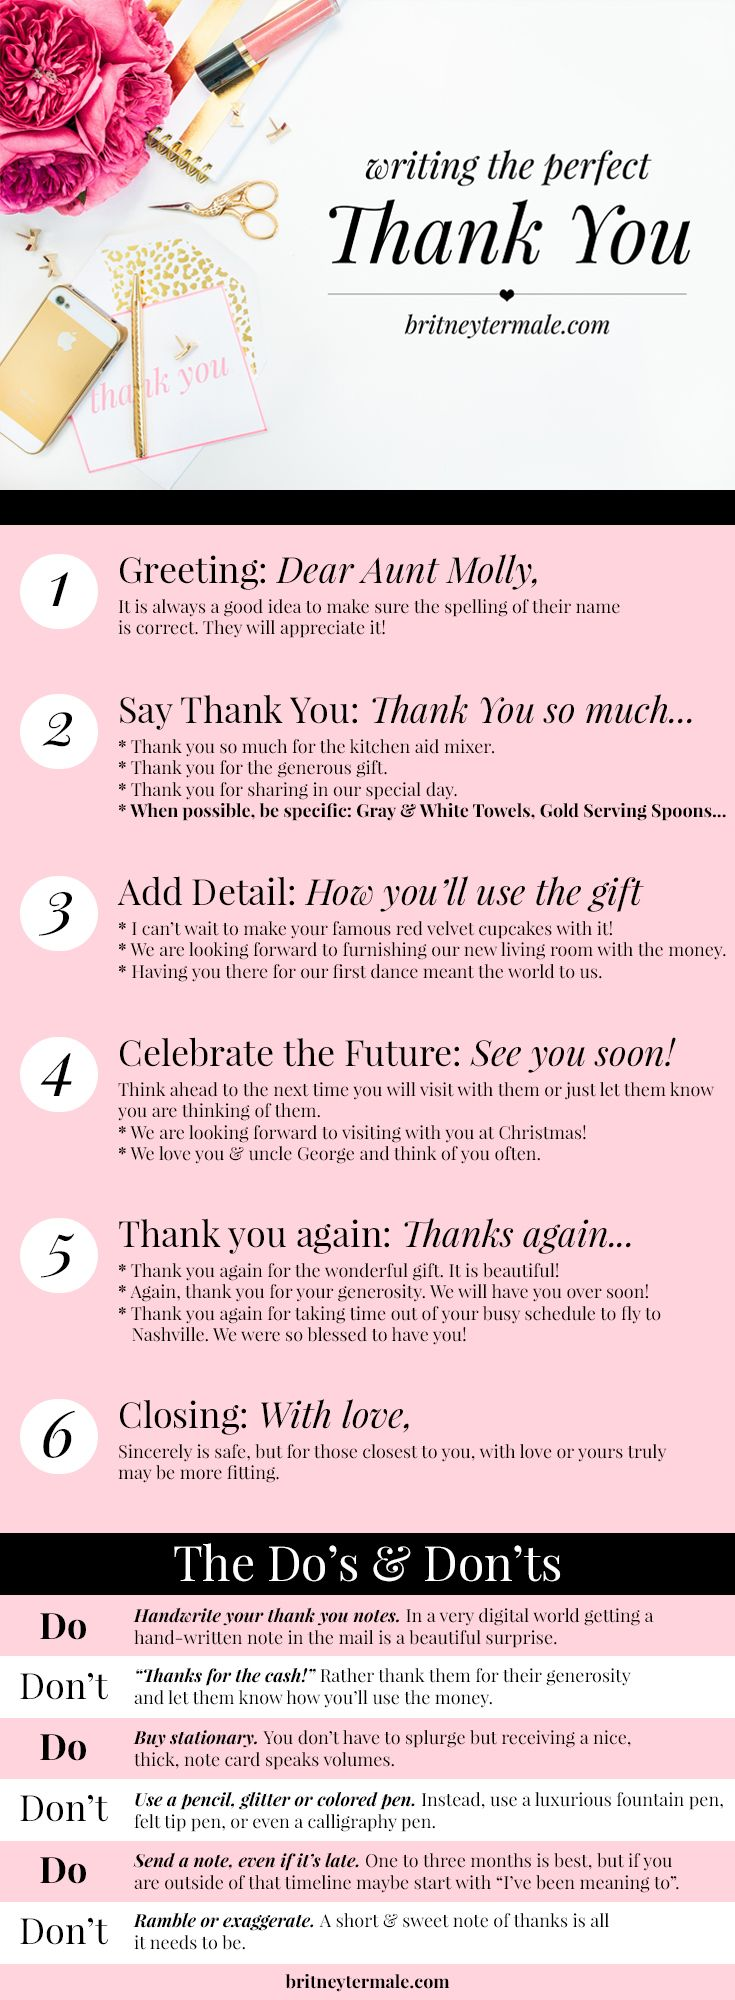 How To Write The Perfect Thank You Note L Britney Termale Grow